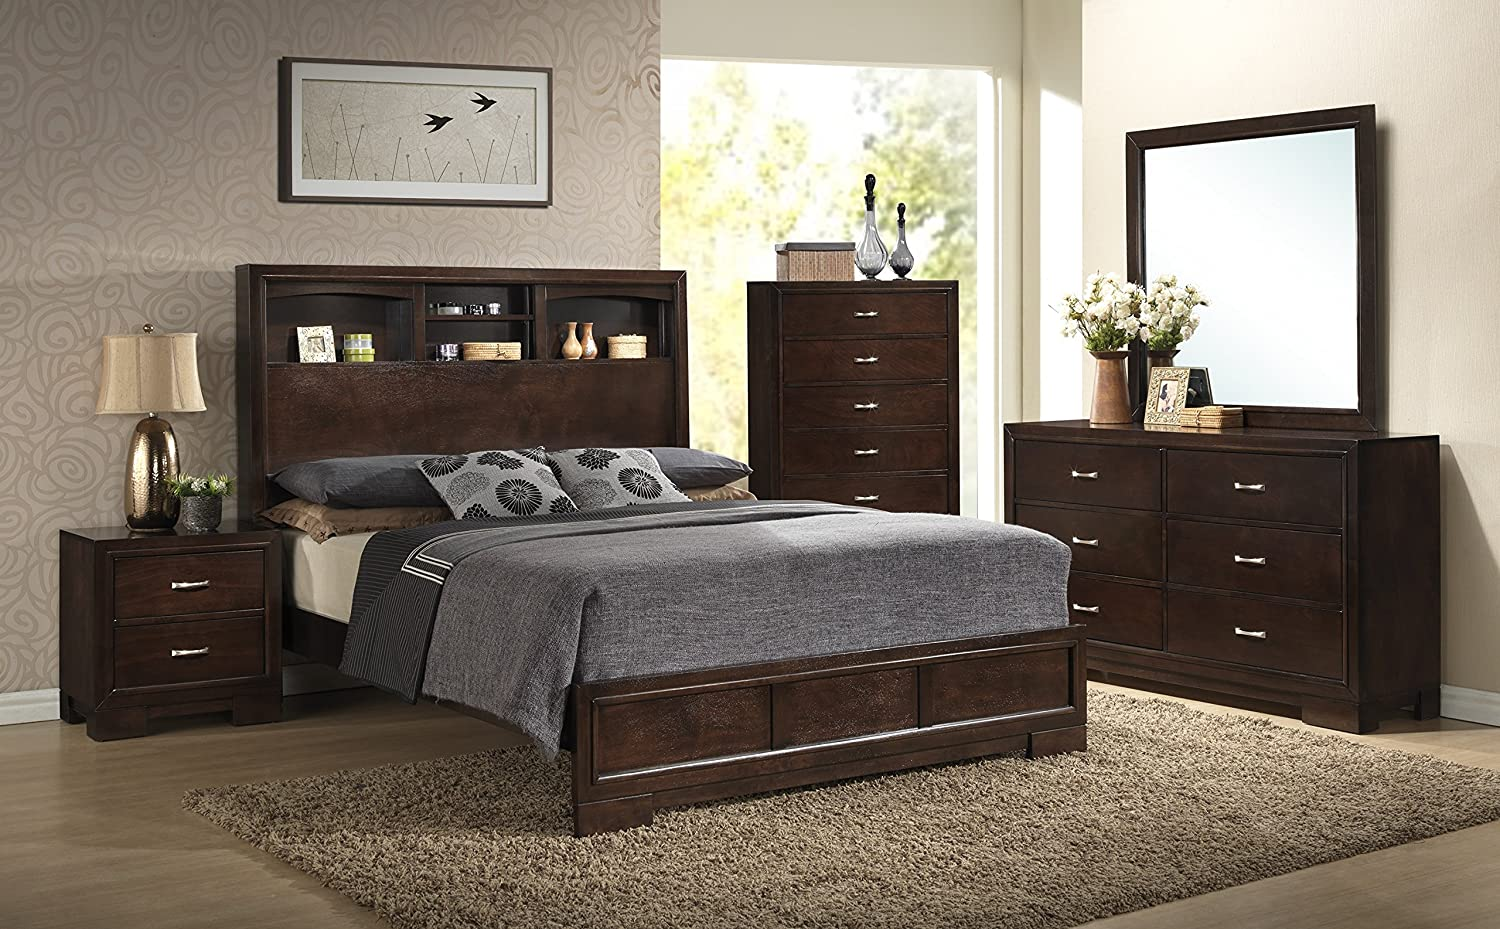 Solid Walnut Bedroom Furniture Amazoncom Roundhill Furniture Montana Modern 5 Piece Wood